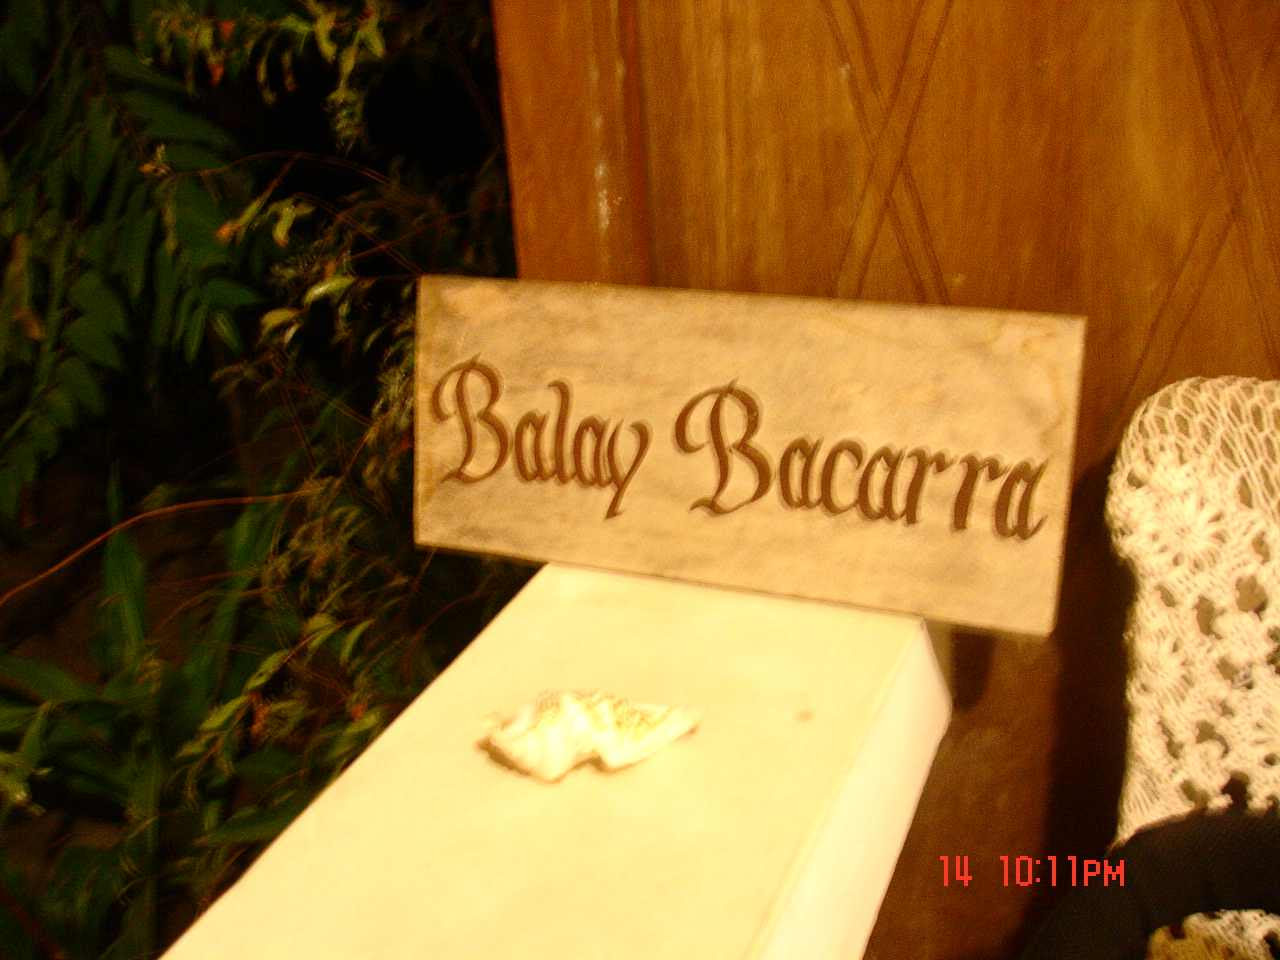 My Lola's family came from Bacarra.